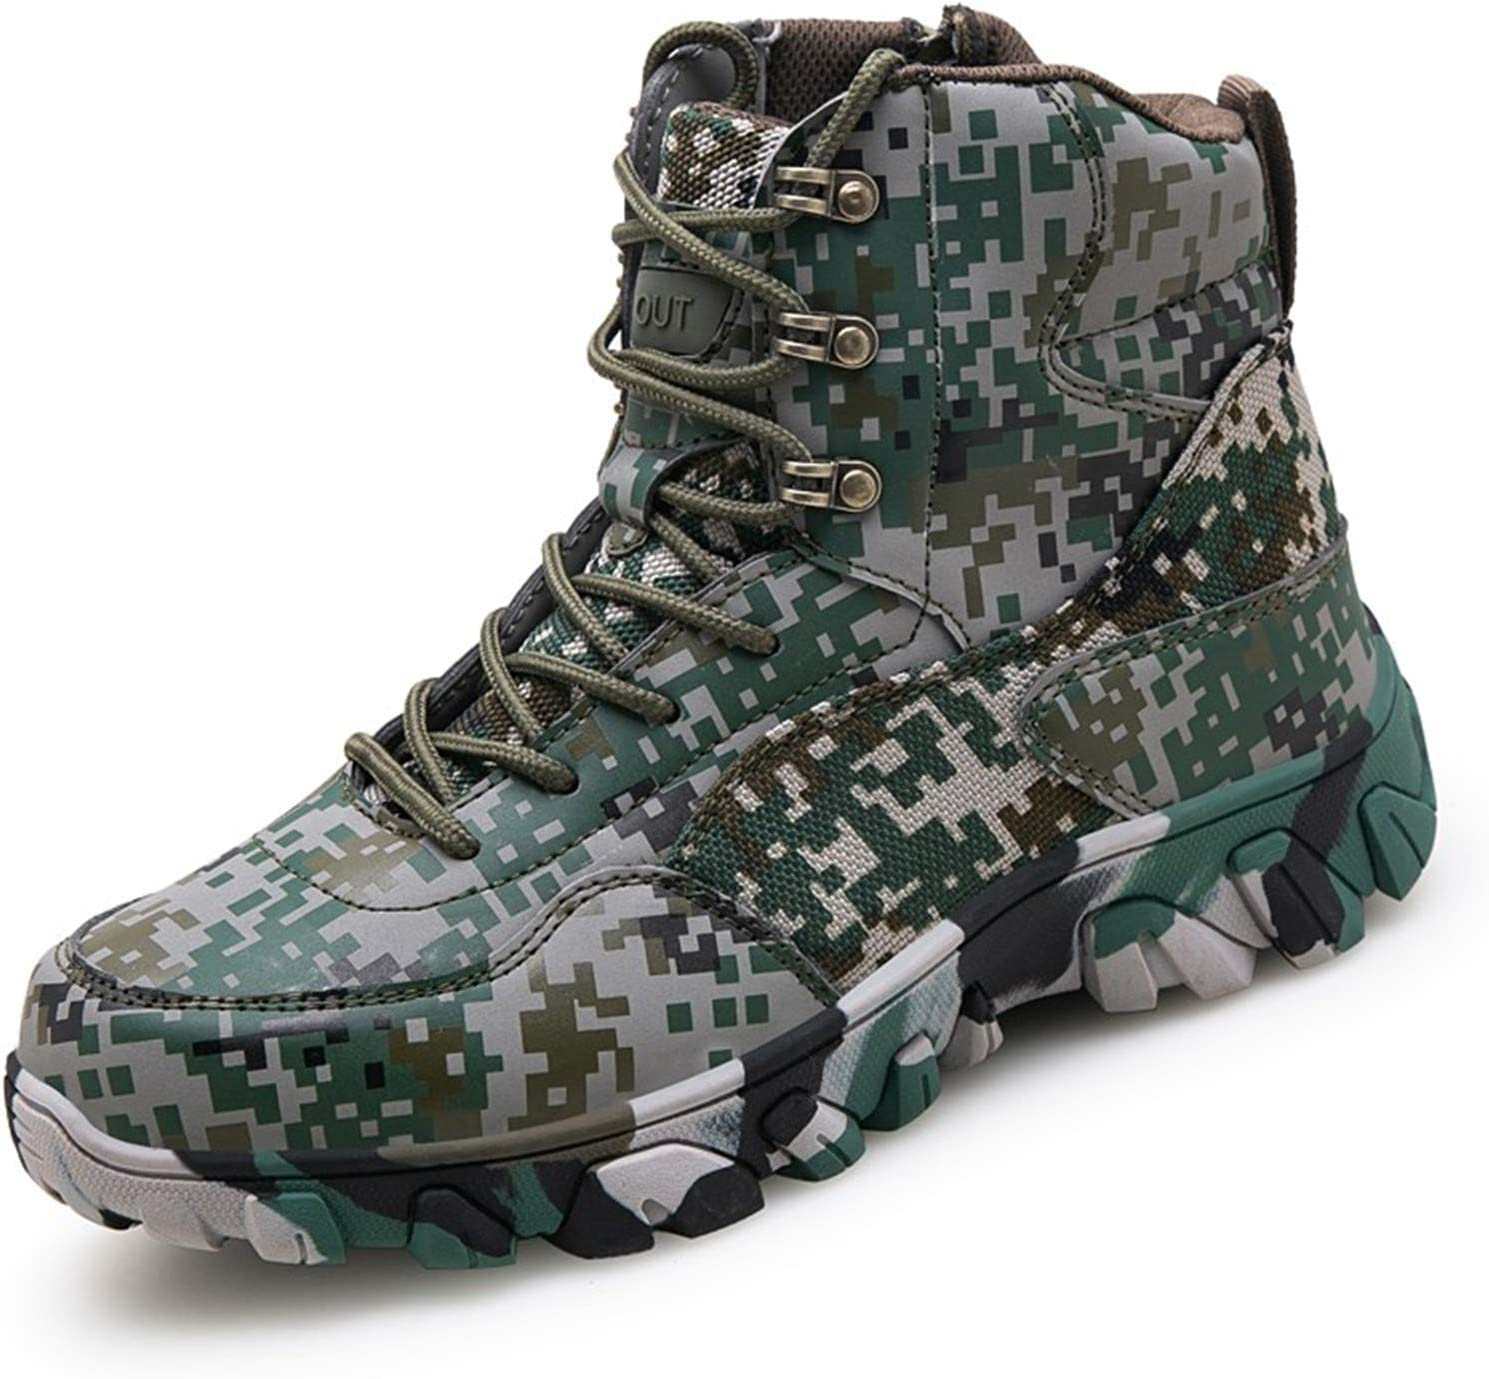 BSFSDWX Tactical Max 89% OFF Military Combat Boots Army Leather Suede Long Beach Mall Men Hu